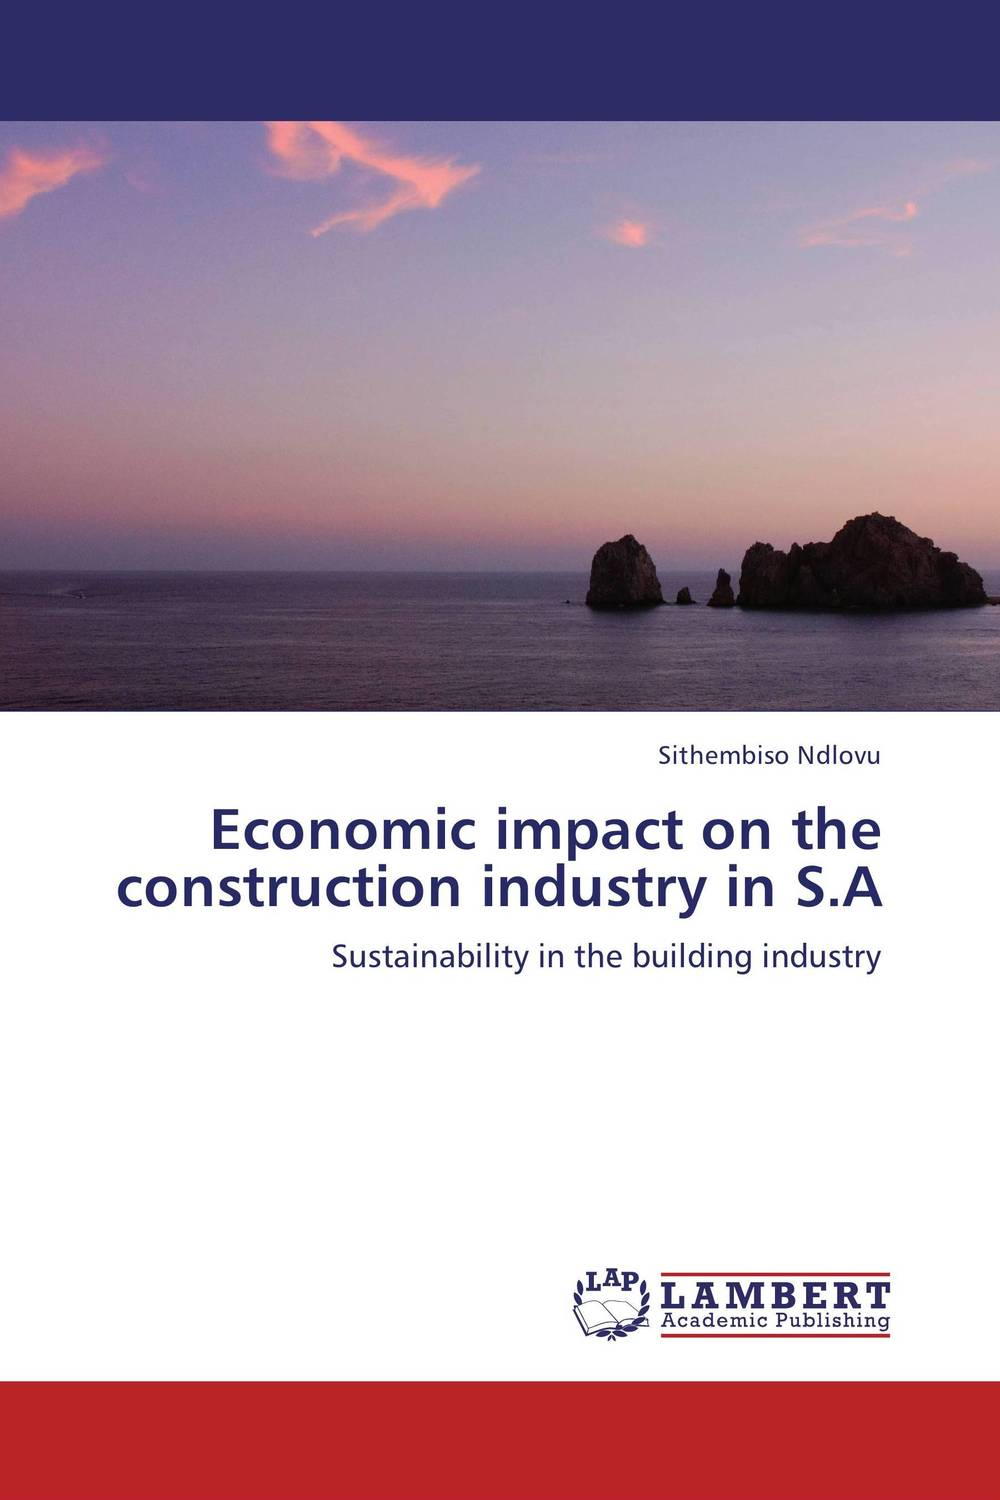 Economic impact on the construction industry in S.A grover norquist glenn debacle obama s war on jobs and growth and what we can do now to regain our future